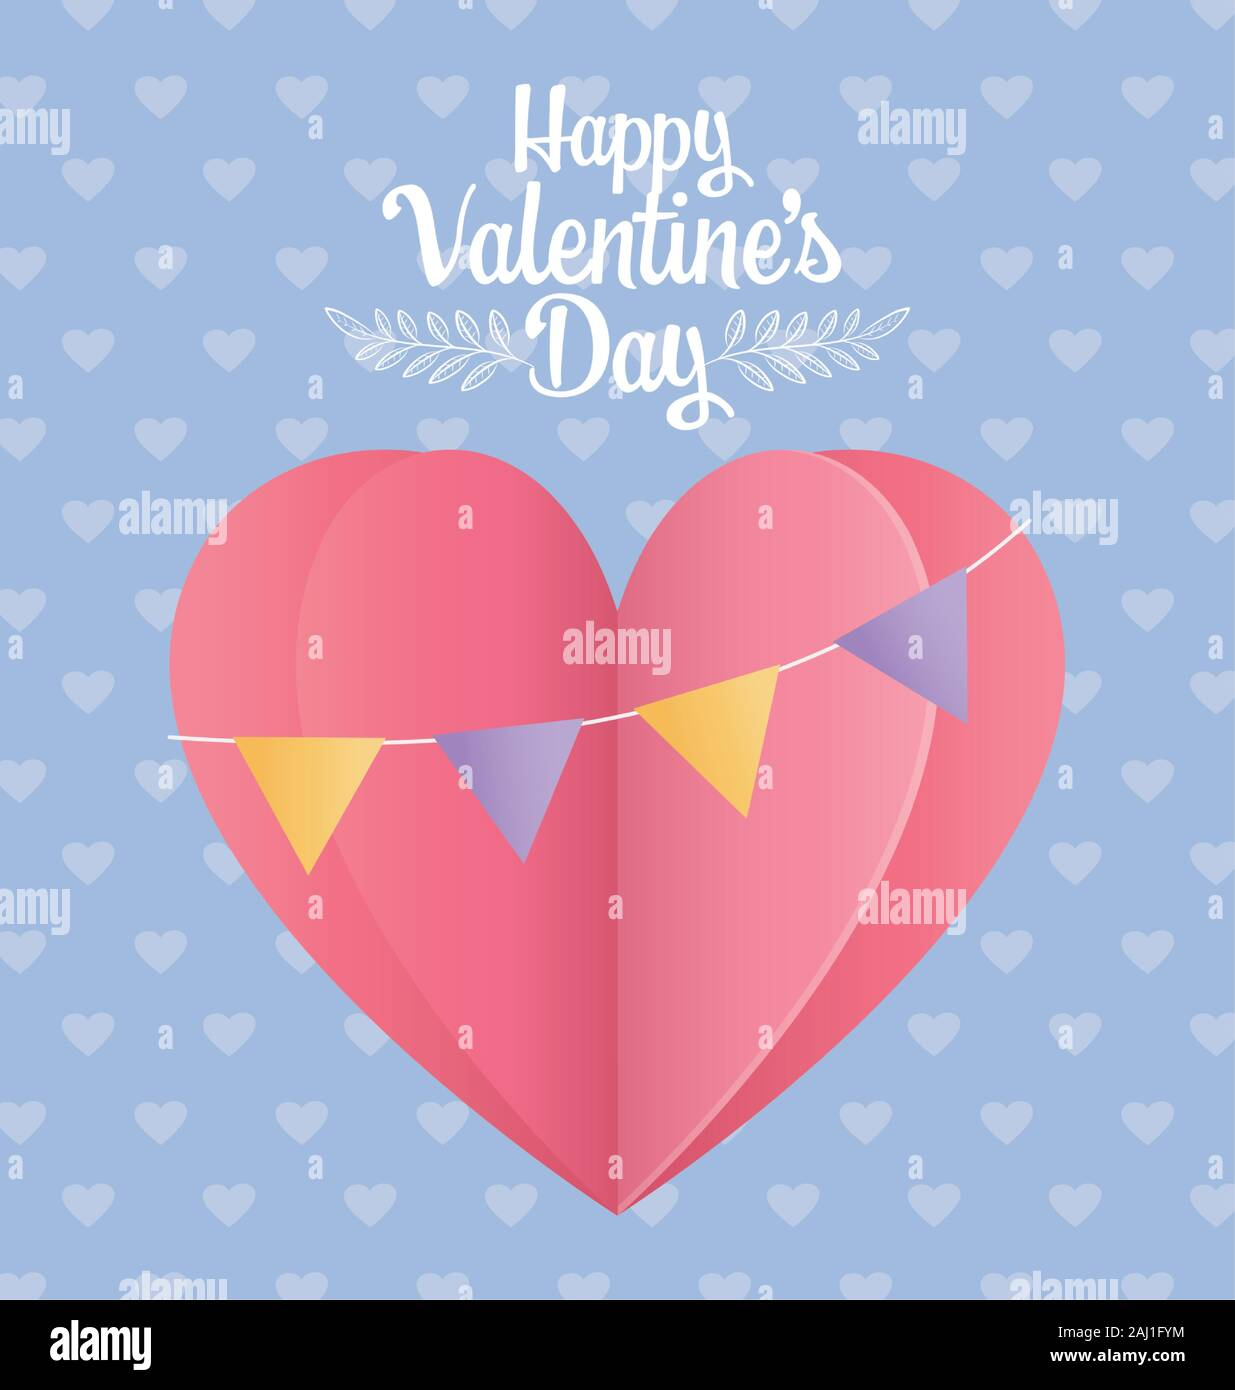 Happy valentines day origami balloons hearts Vector Image | 1390x1235